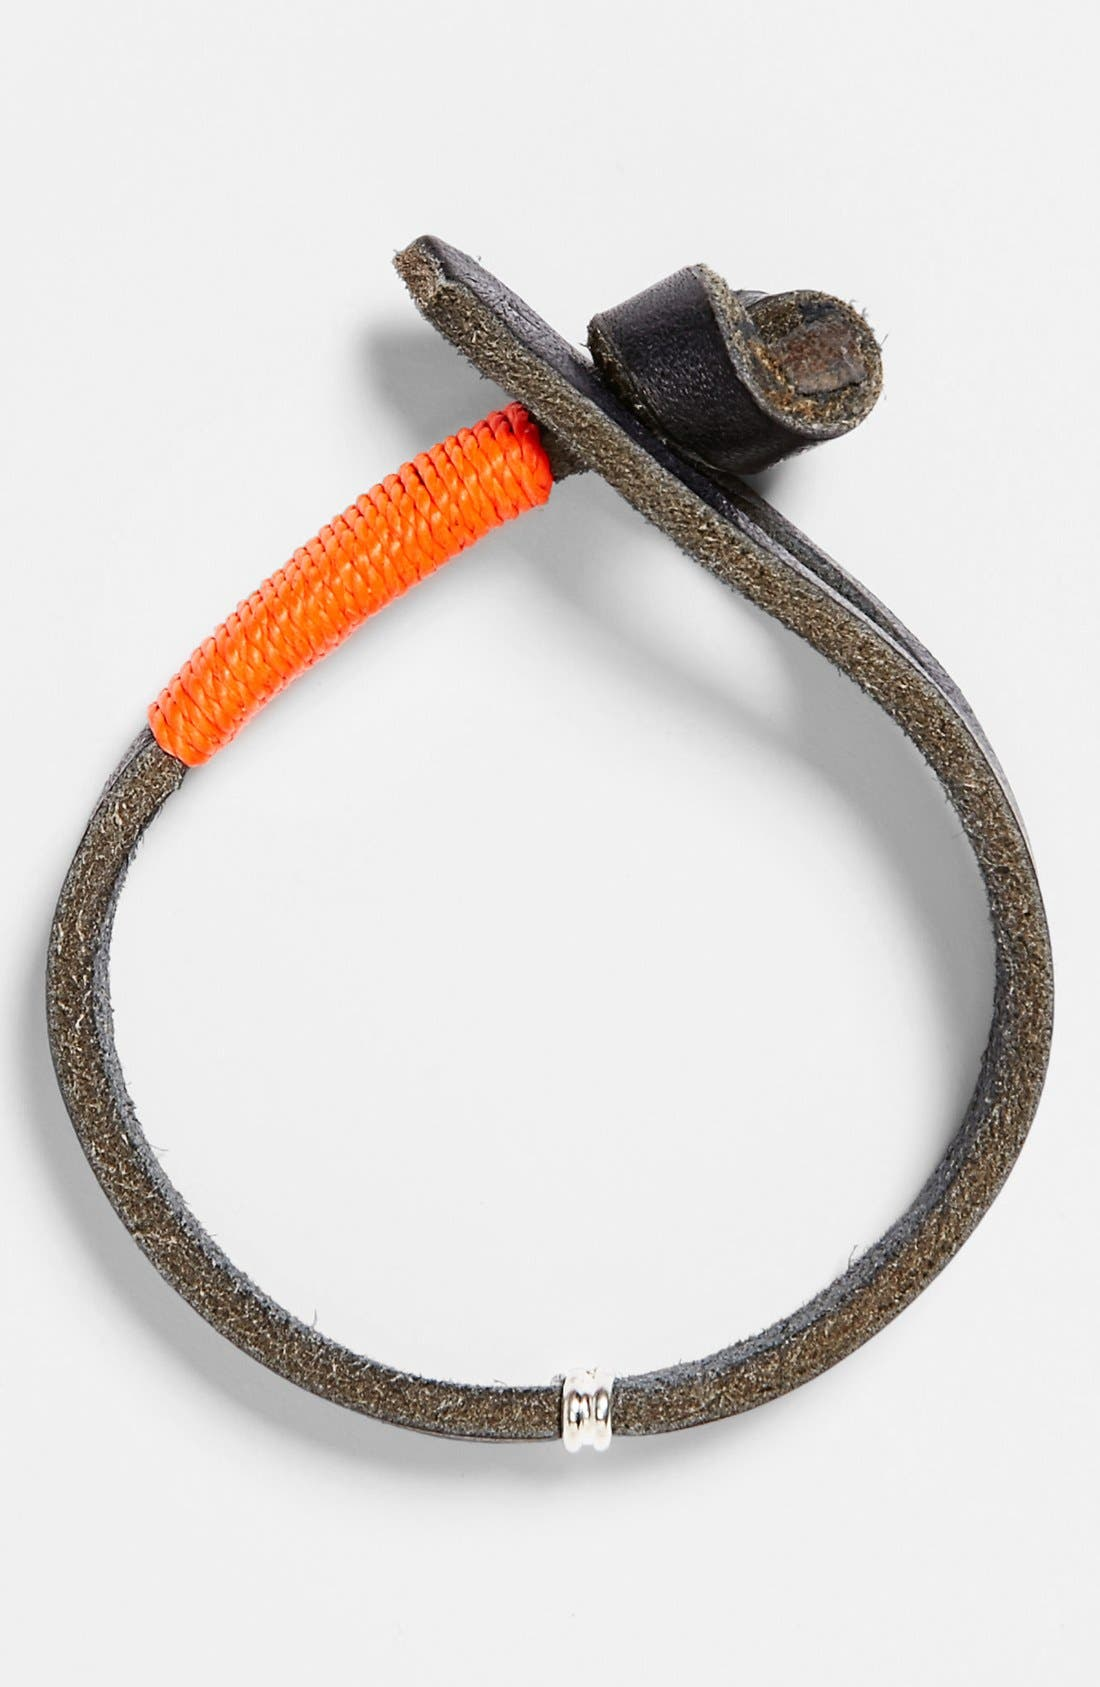 Alternate Image 1 Selected - CAPUTO & CO Knot & Loop Leather Bracelet